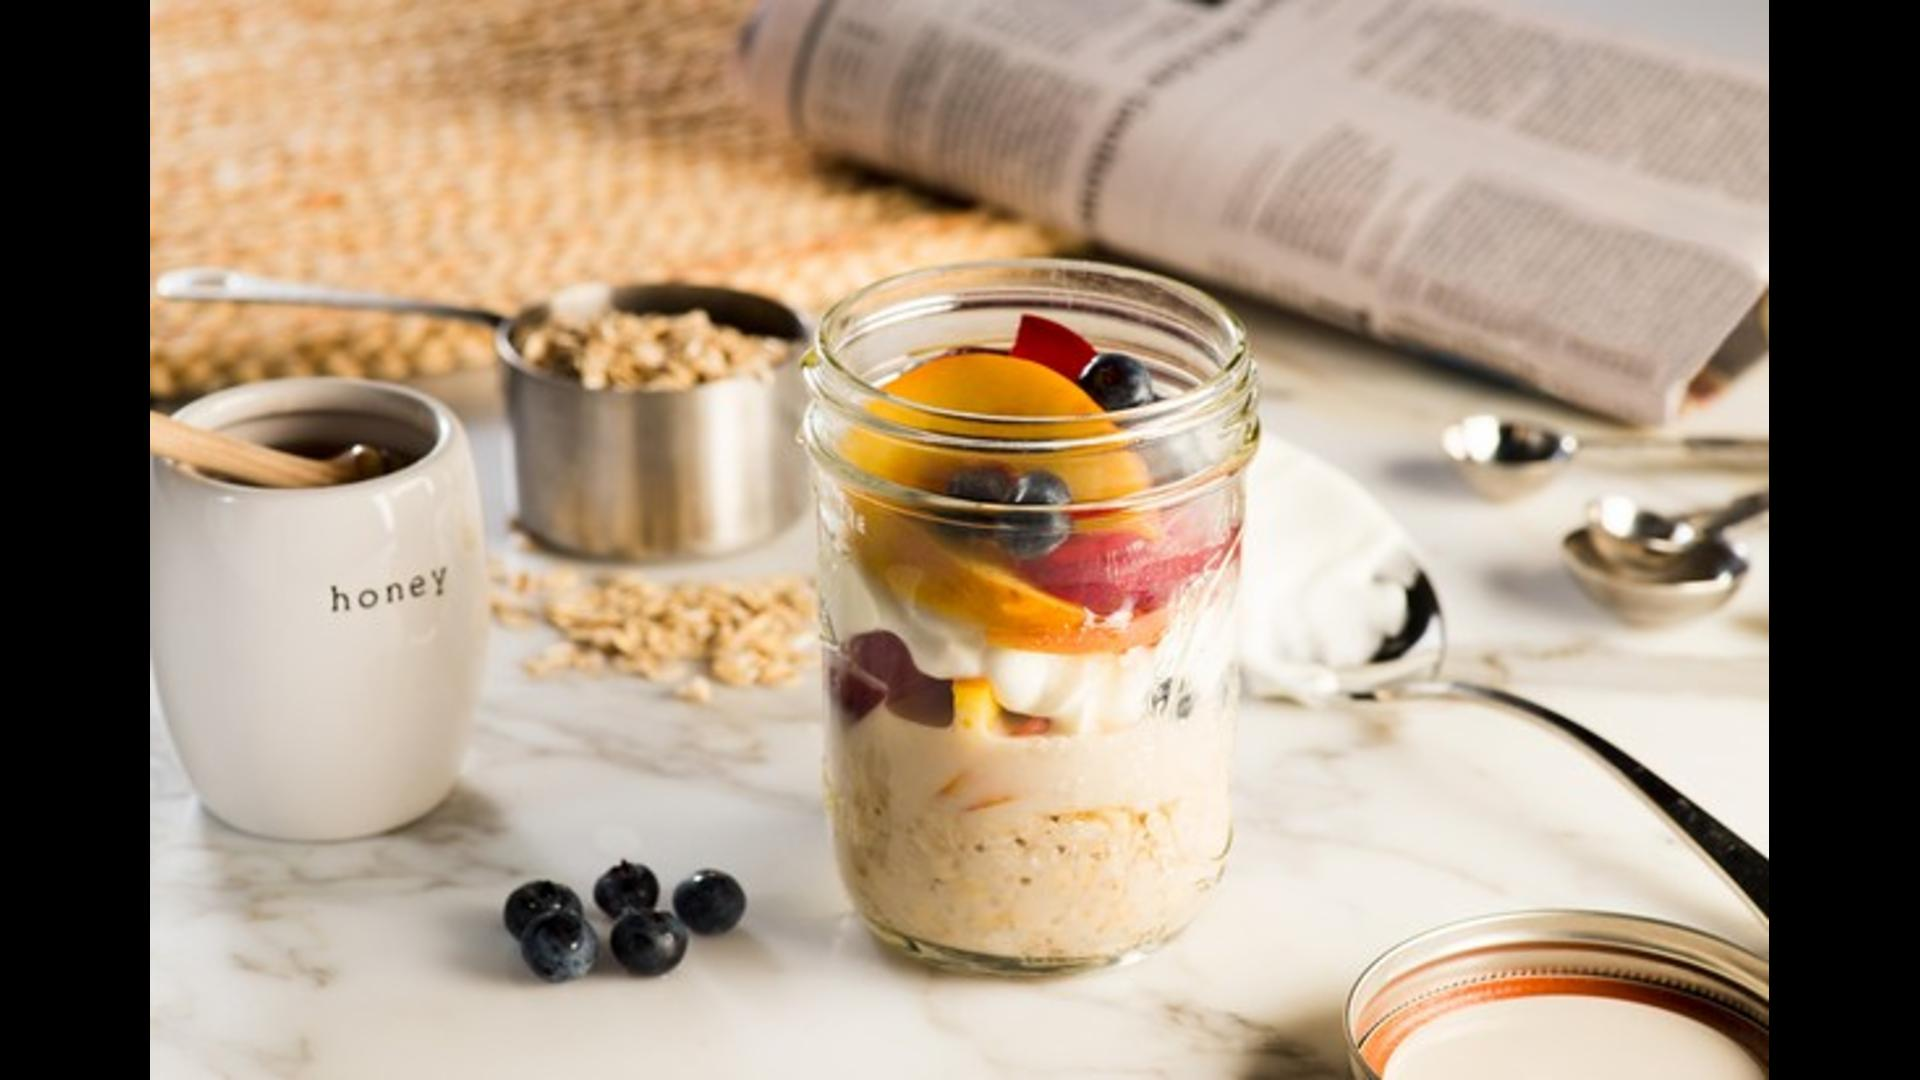 The Best Overnight Oats Recipes | HuffPost Life